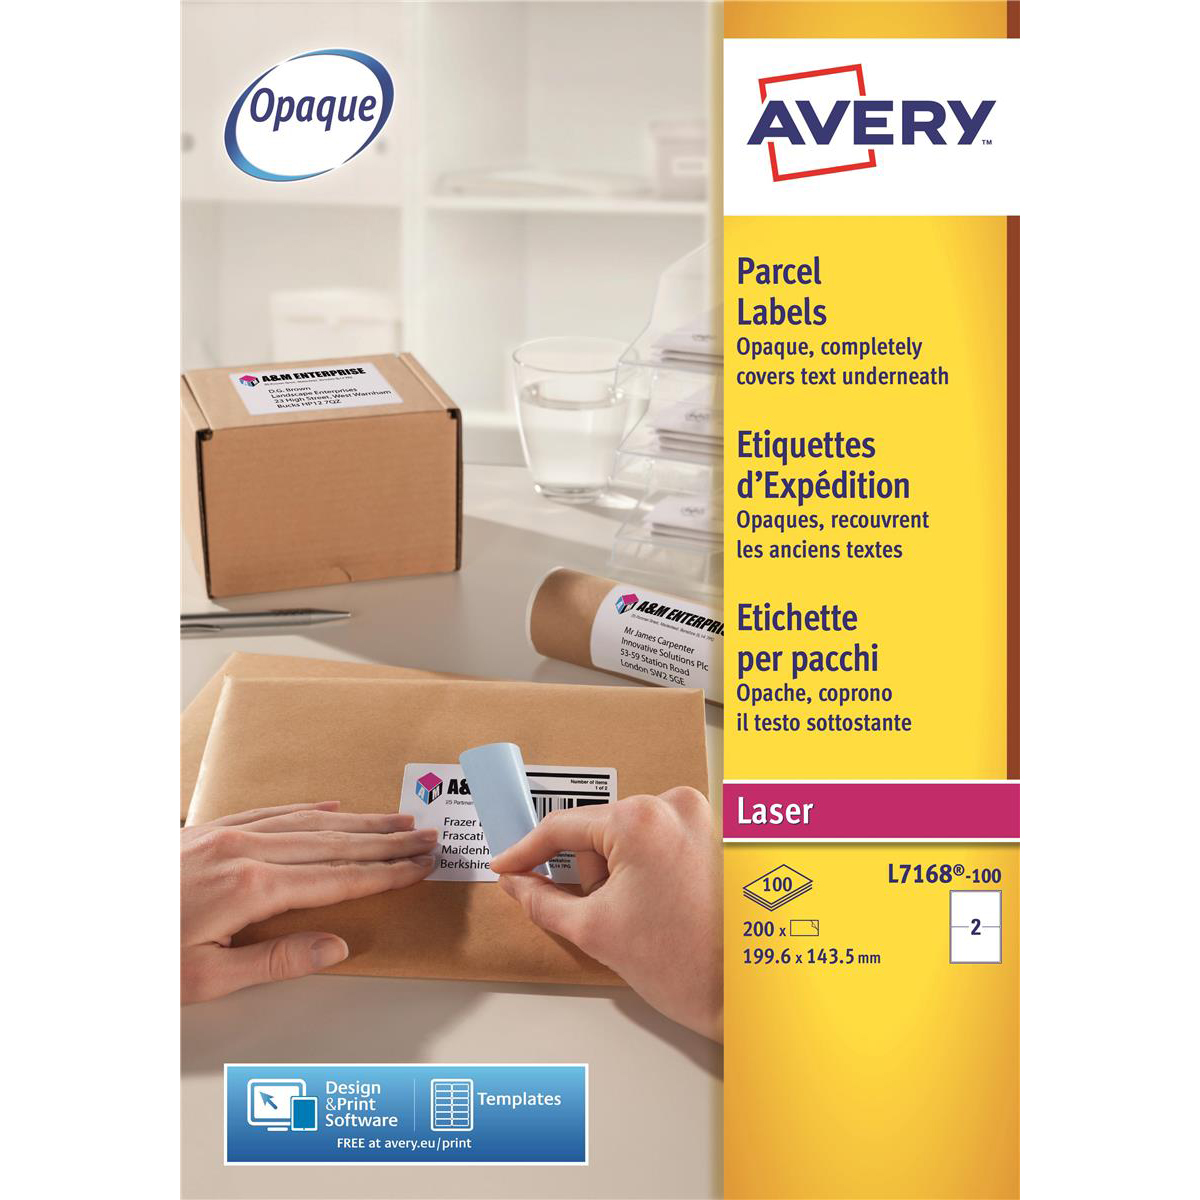 Avery Parcel Labels Laser Jam-free 2 per Sheet 199.6x143.5mm Opaque White Ref L7168-100 200 Labels